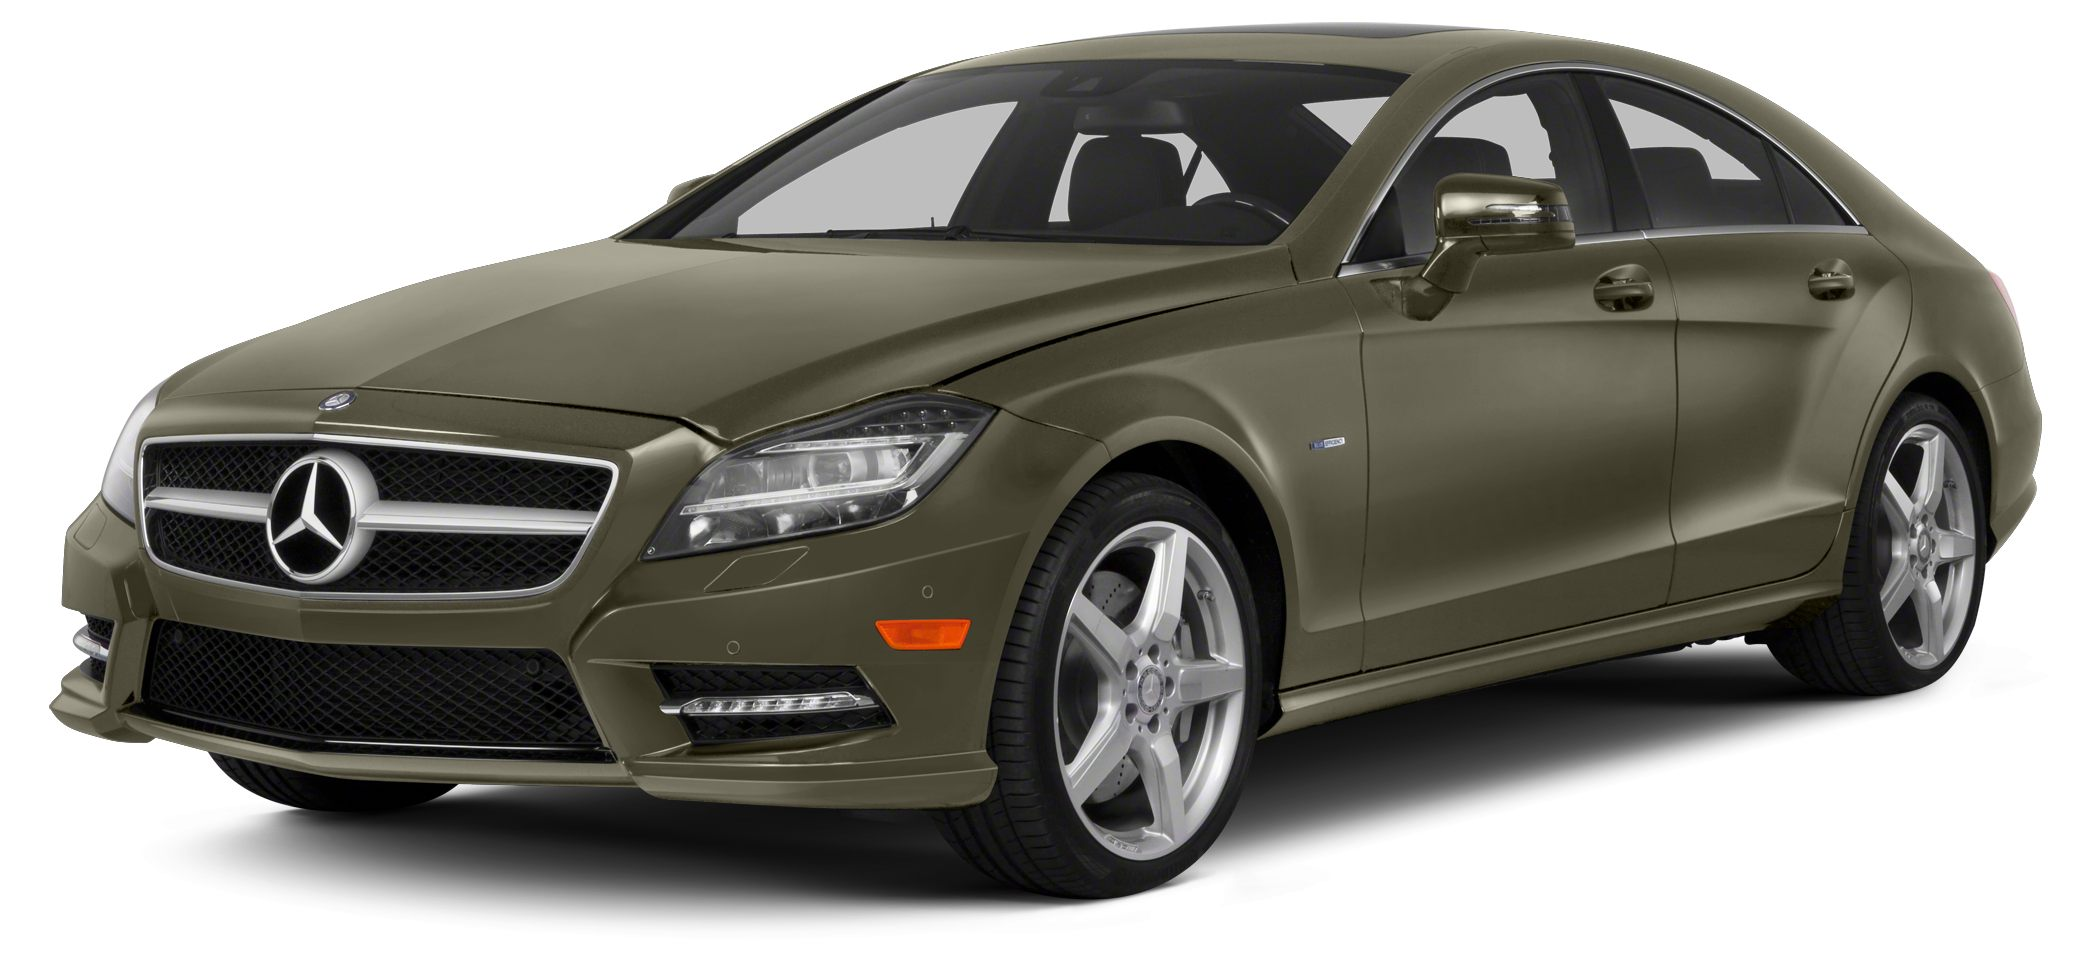 2012 MERCEDES CLS-Class CLS550 4MATIC Visit Best Auto Group online at bronxbestautocom to see mor